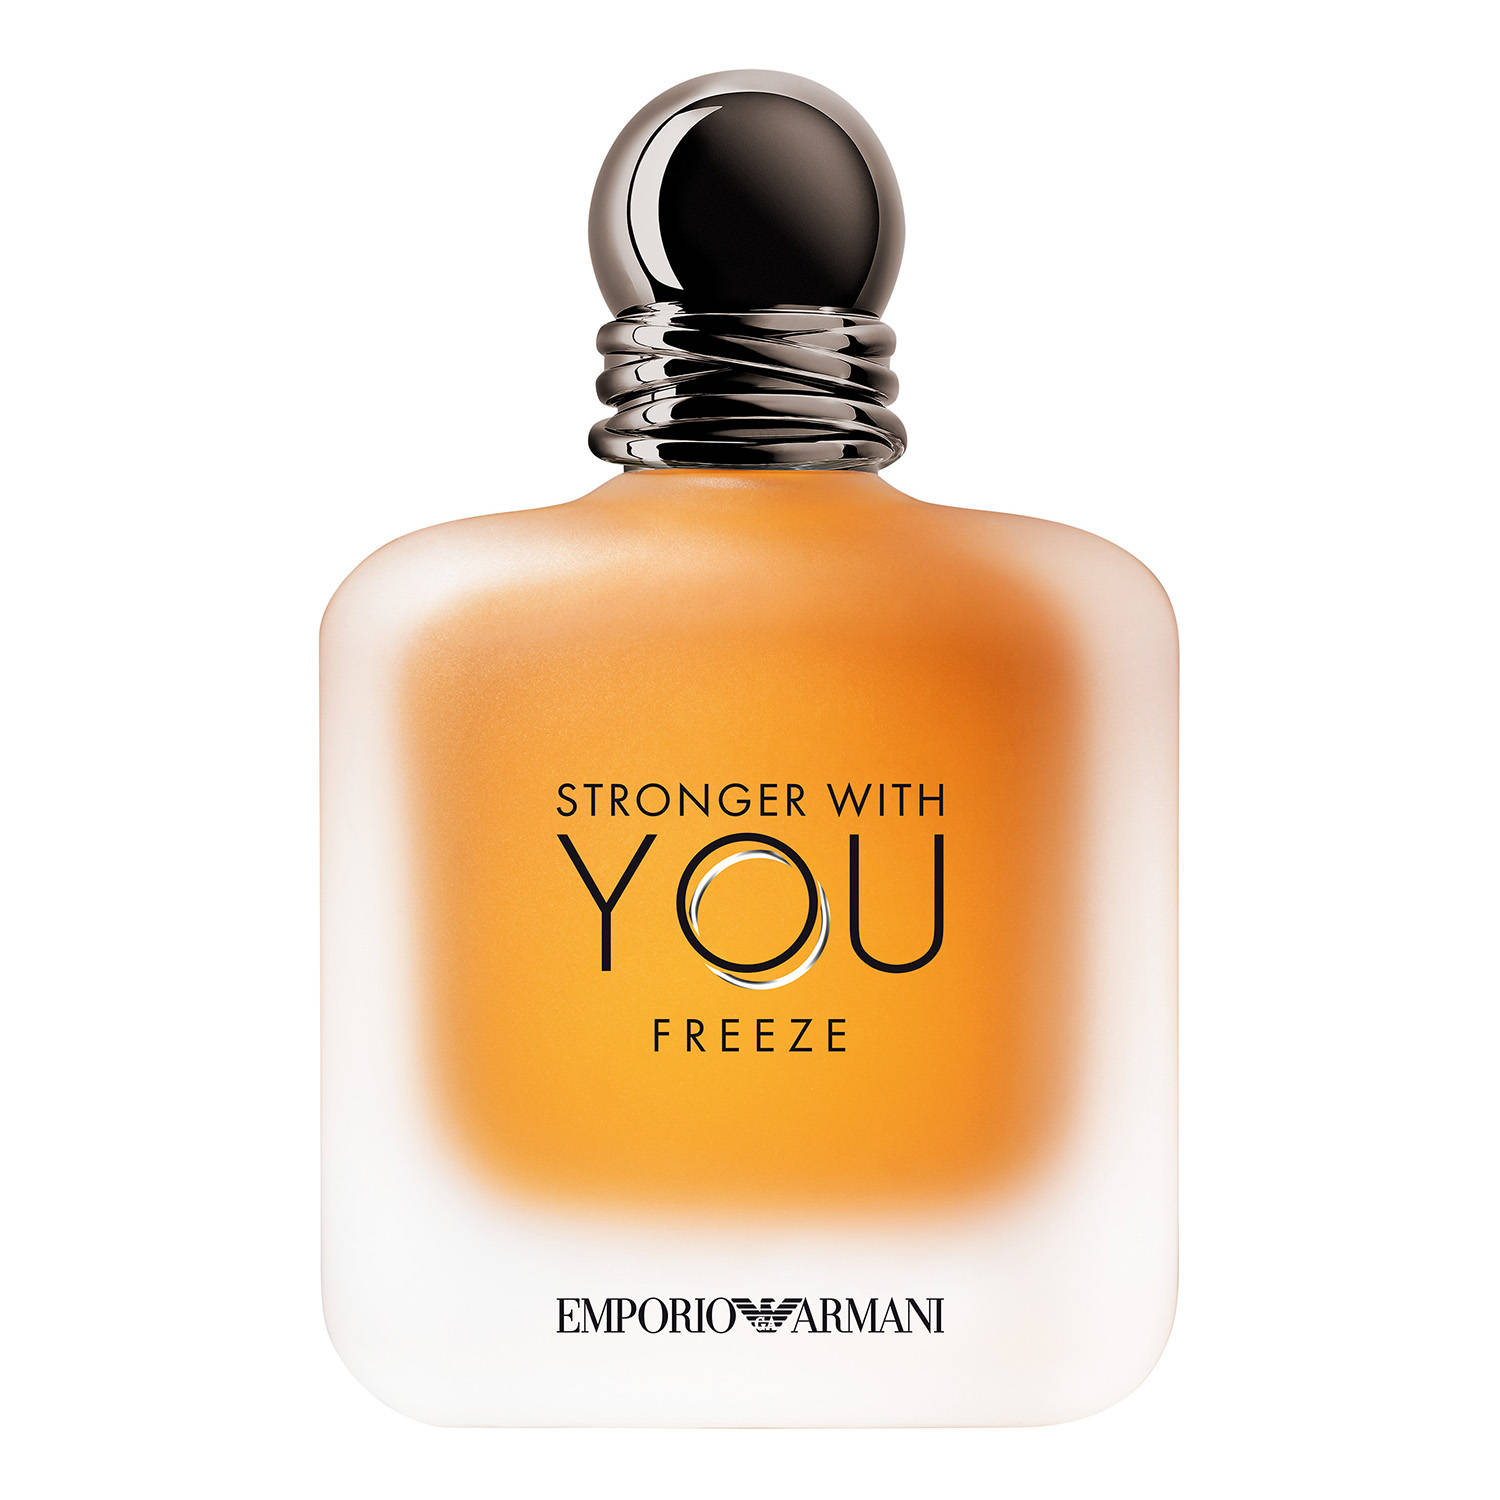 ARMANI Emporio Stronger With You Freeze Eau de Toilette 100 ml.